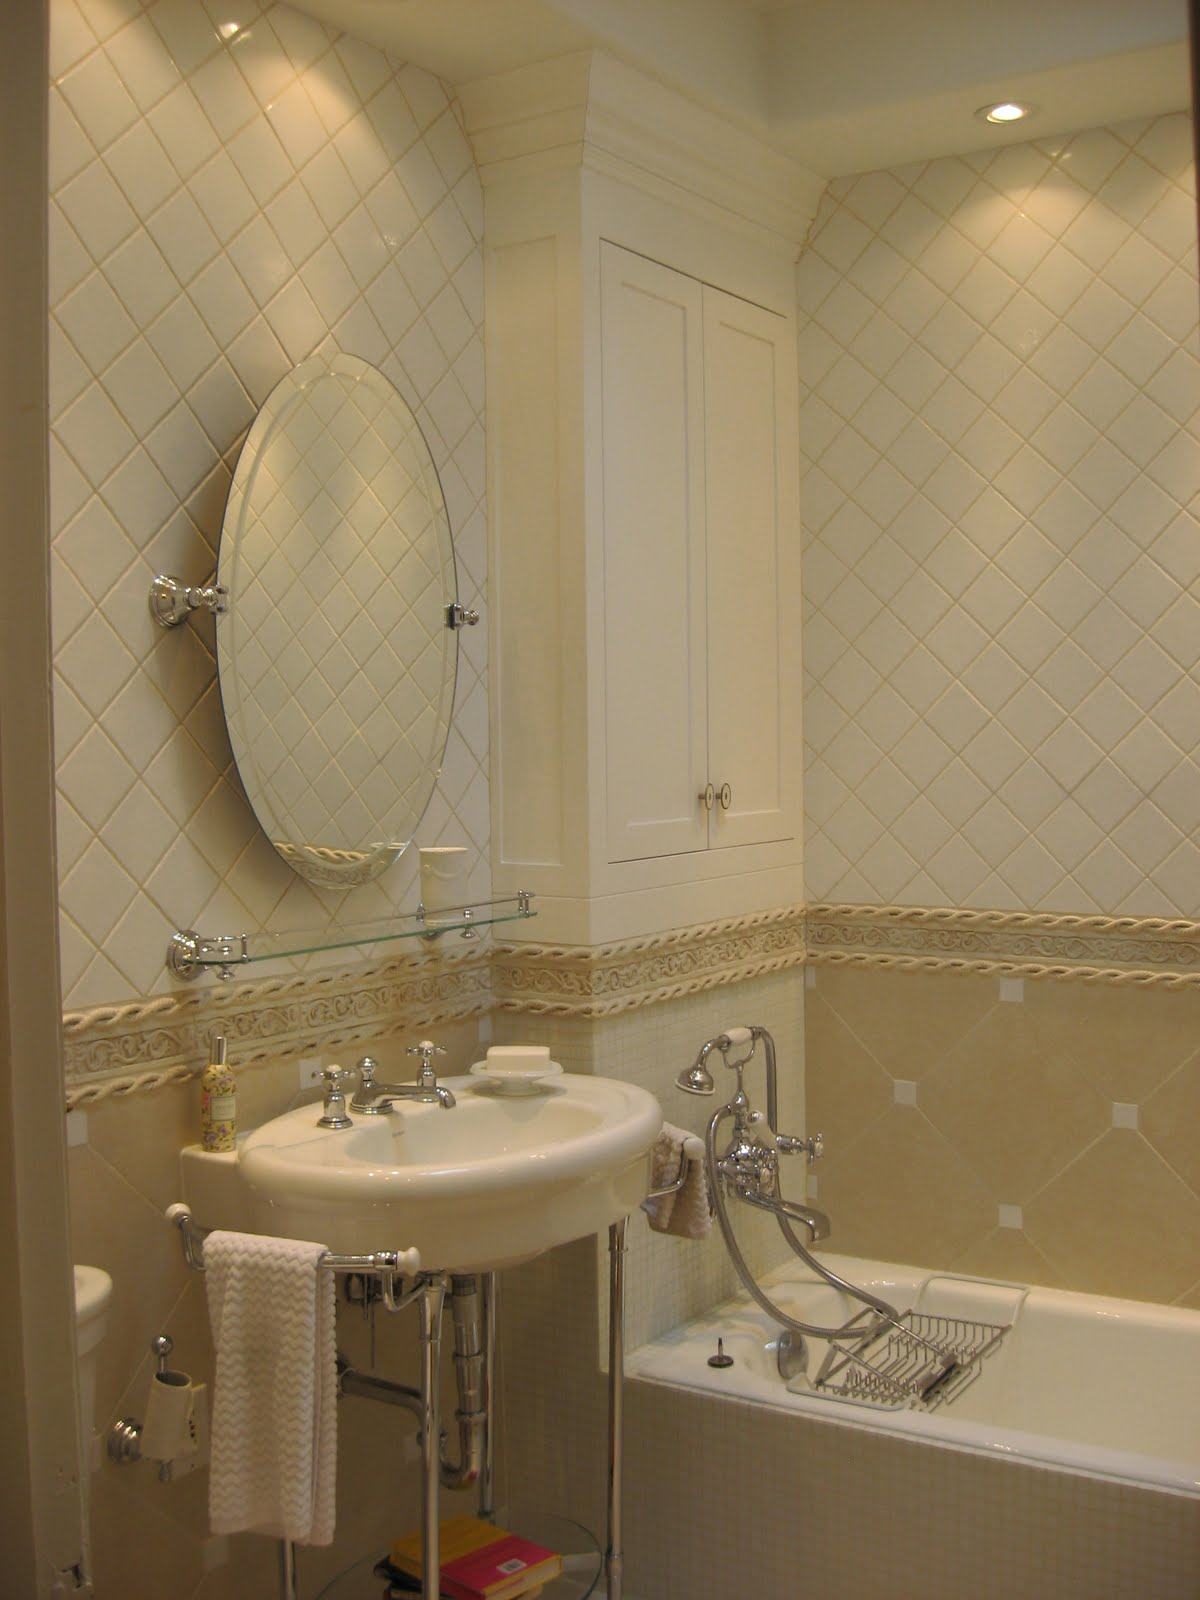 bath-room-small-bathroom-wall-tile-designs